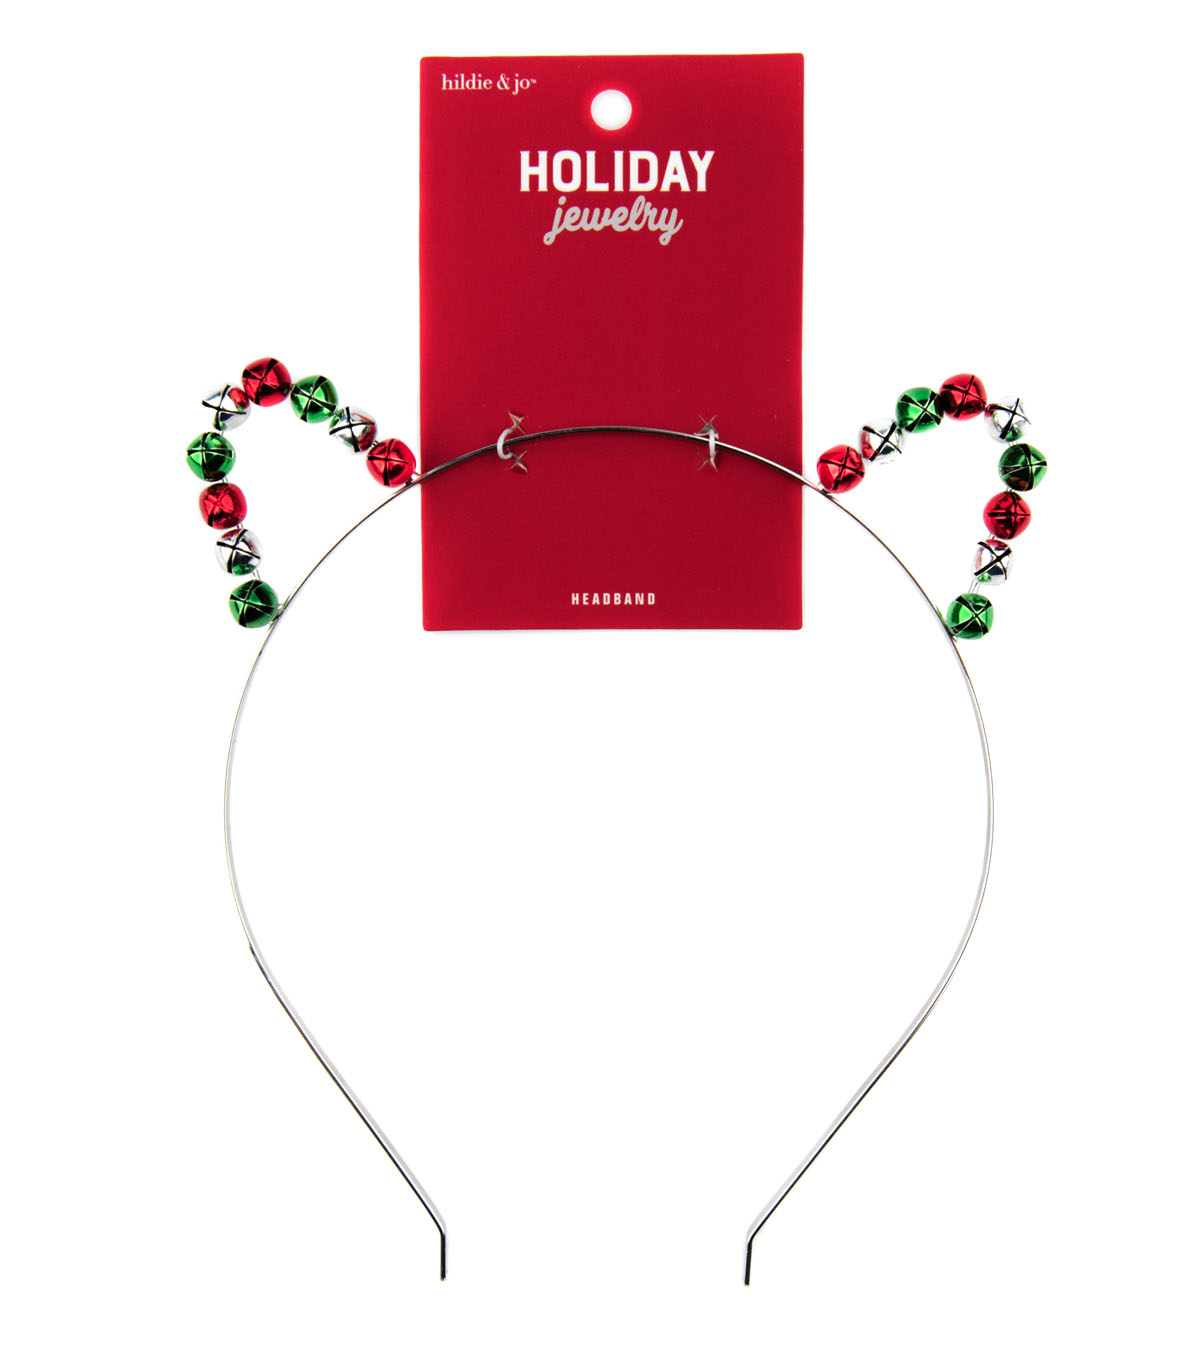 hildie & jo Holiday Jewelry Cat Ears Headband with Jingle Bells